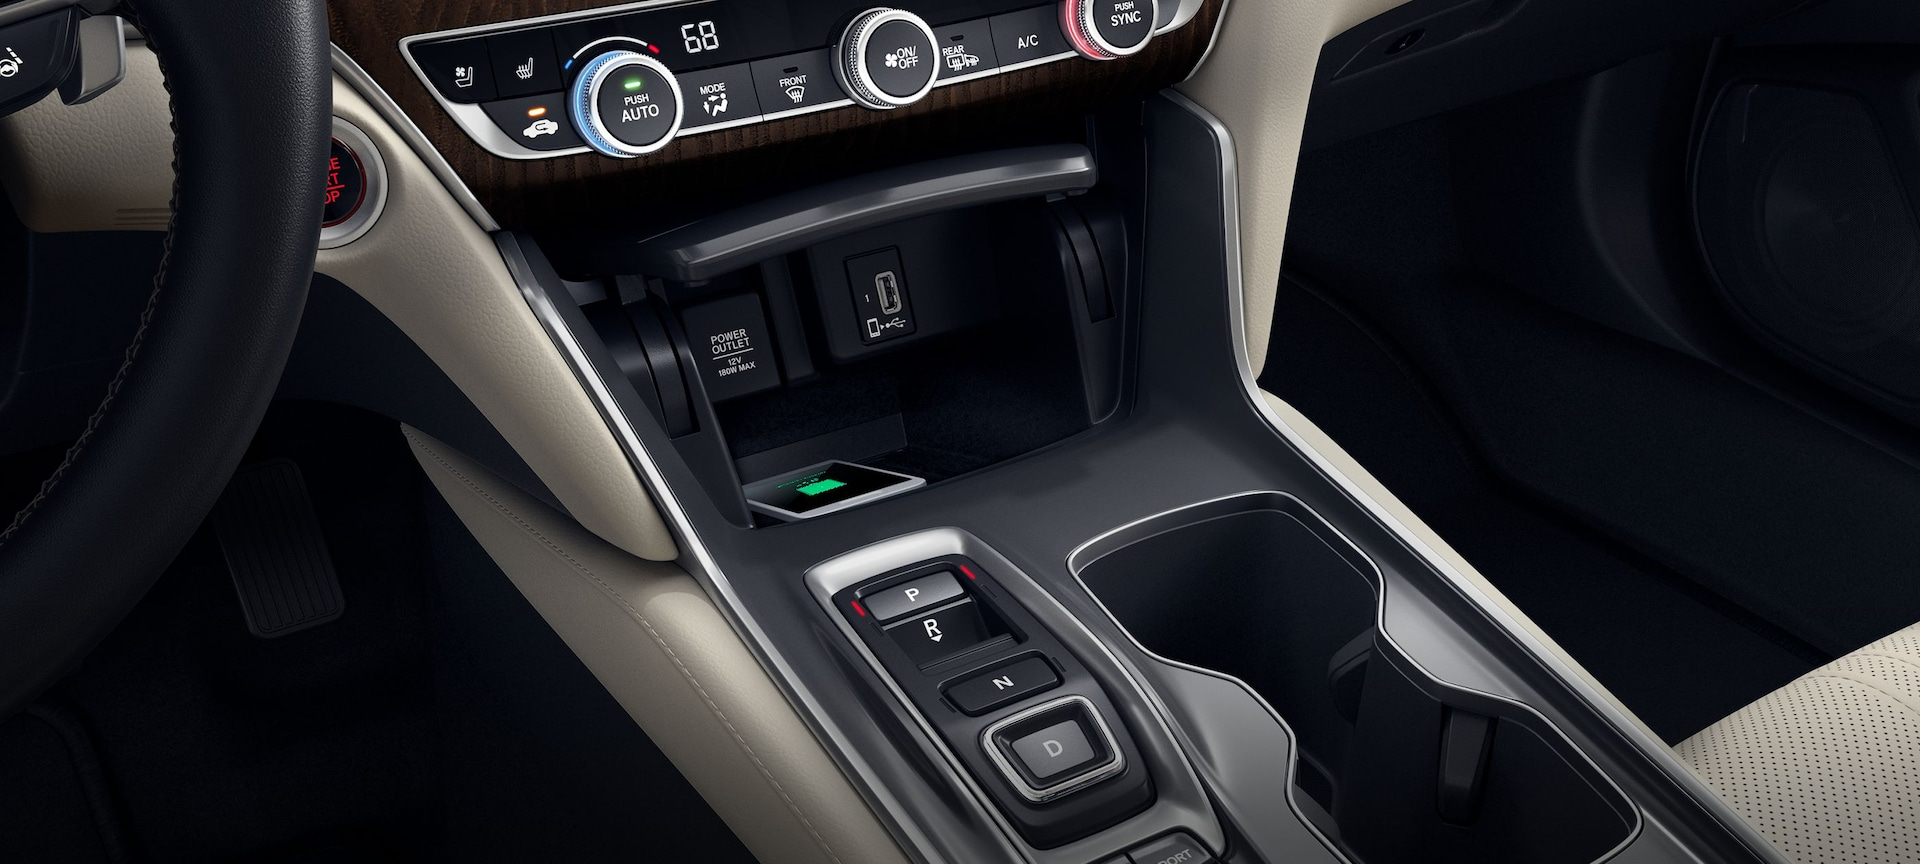 Detail of wireless phone charger in center console storage in the 2019 Honda Accord.